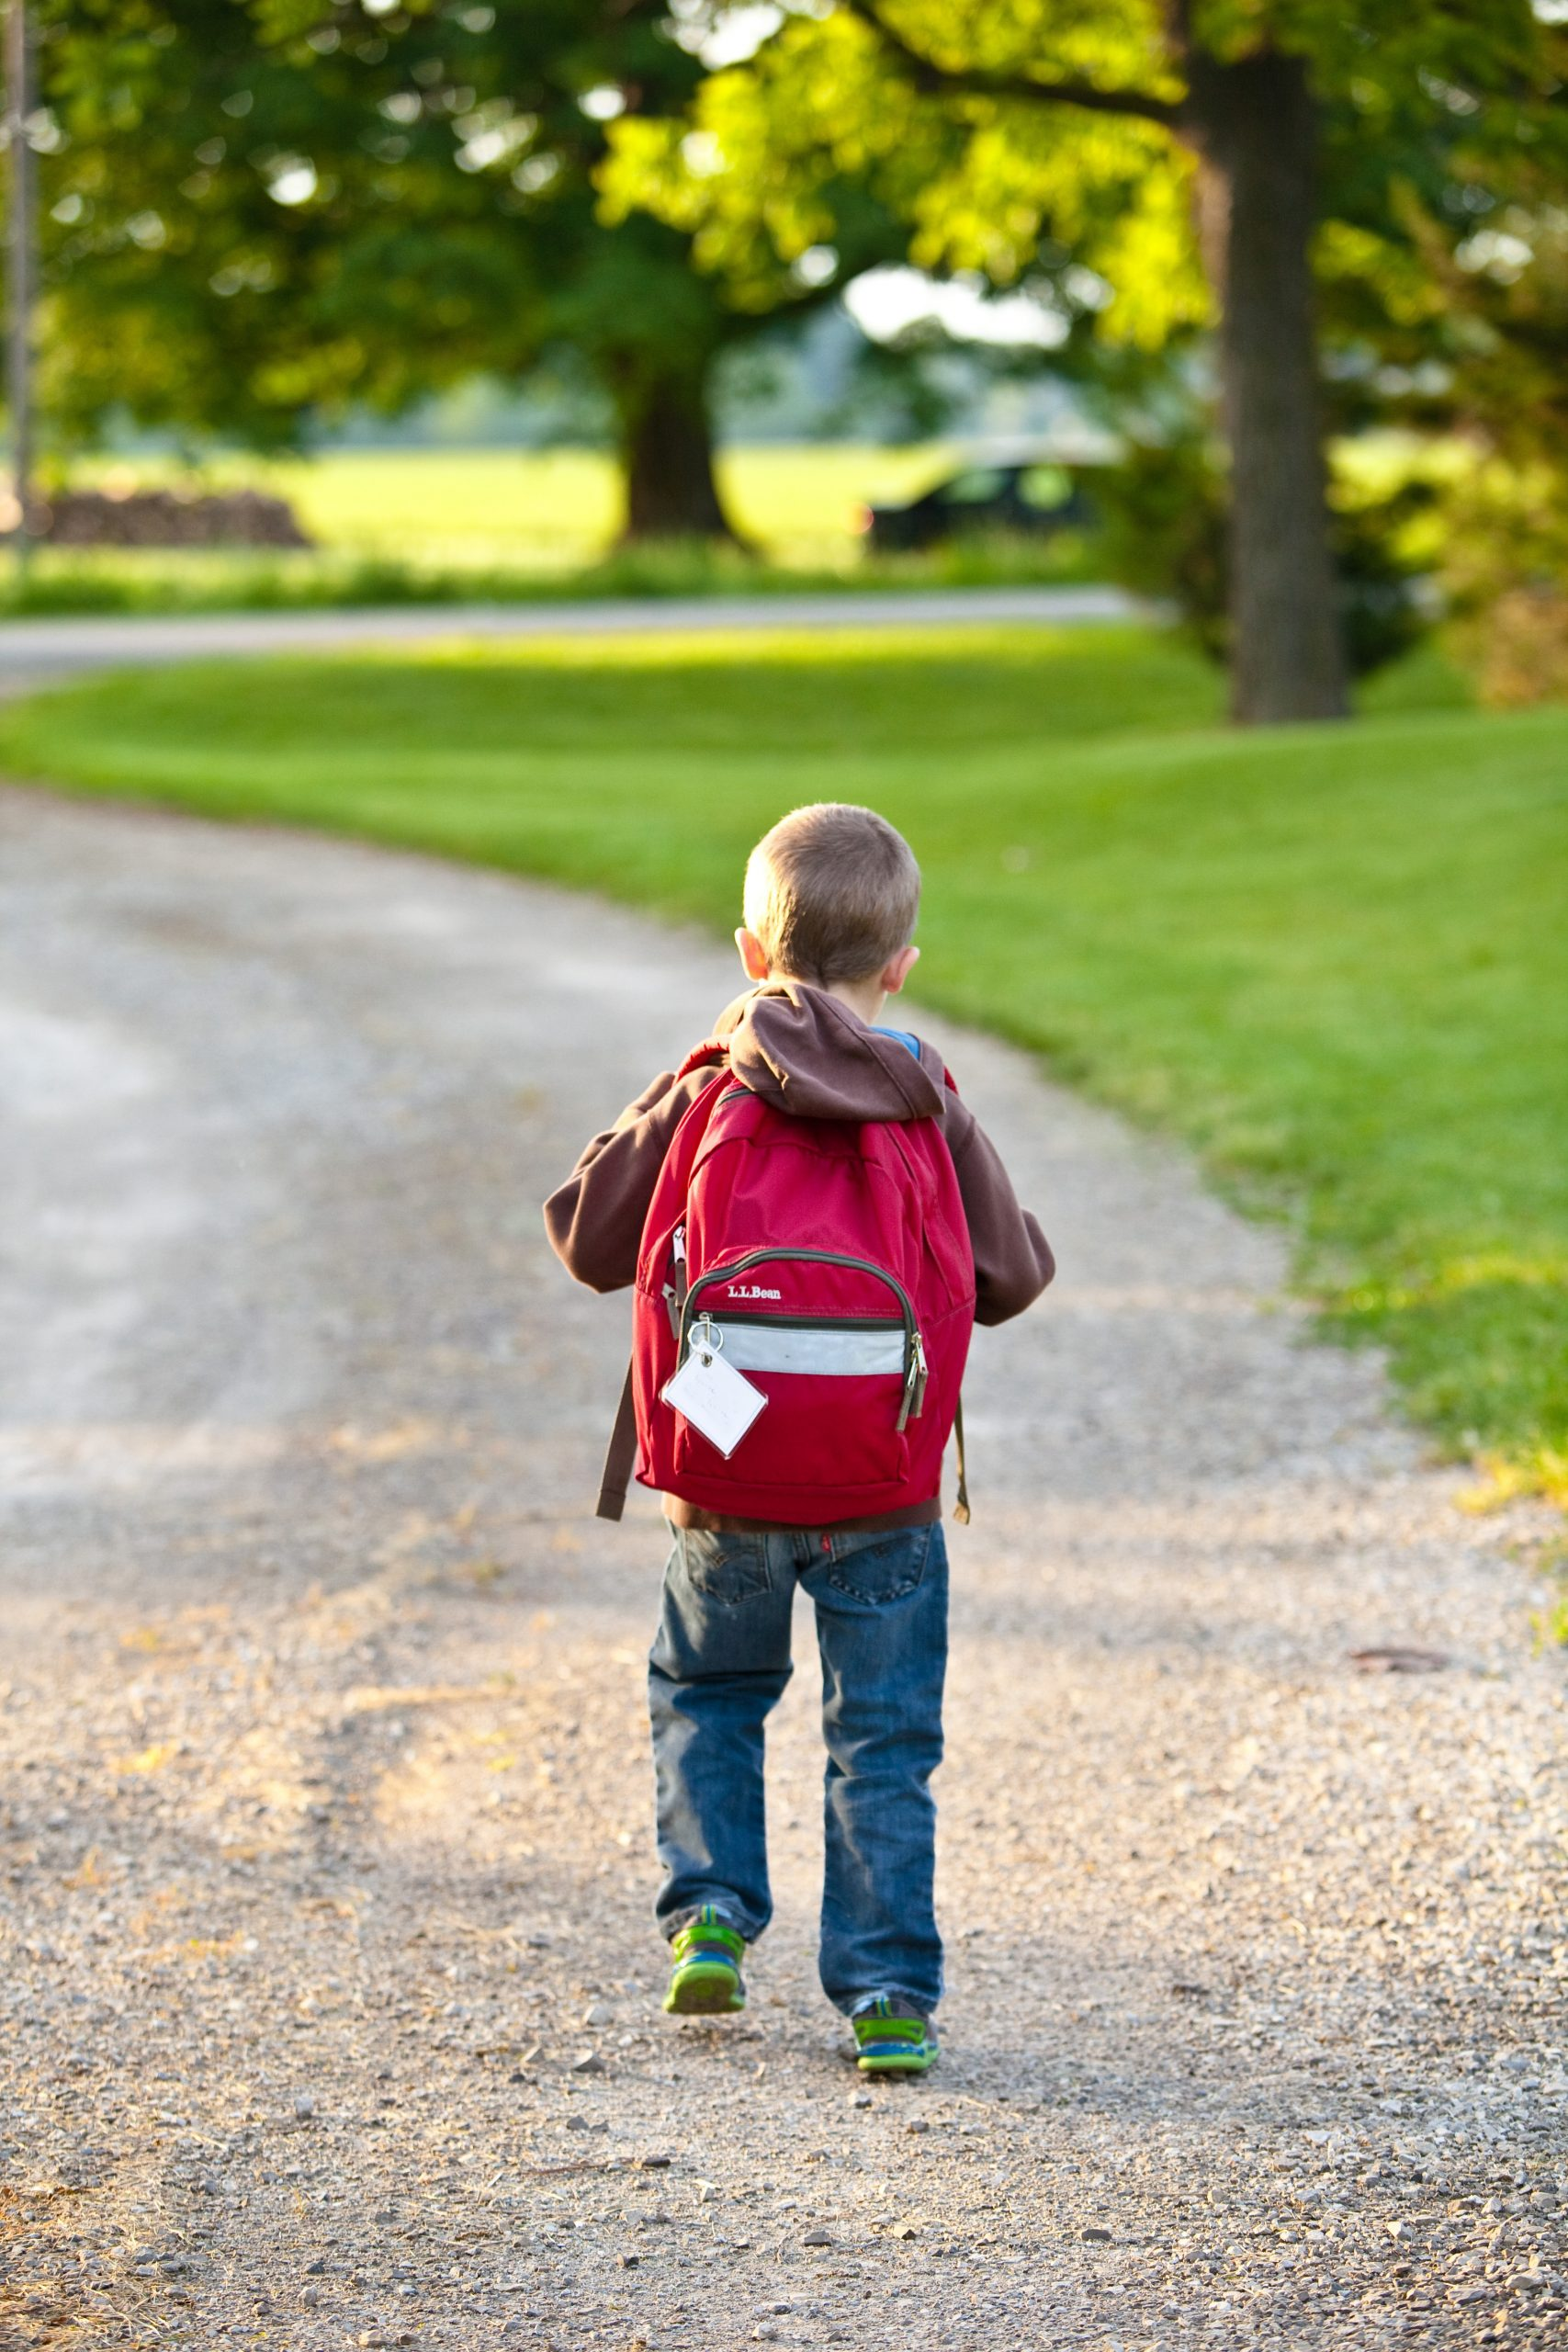 what should your 4 years old know academically